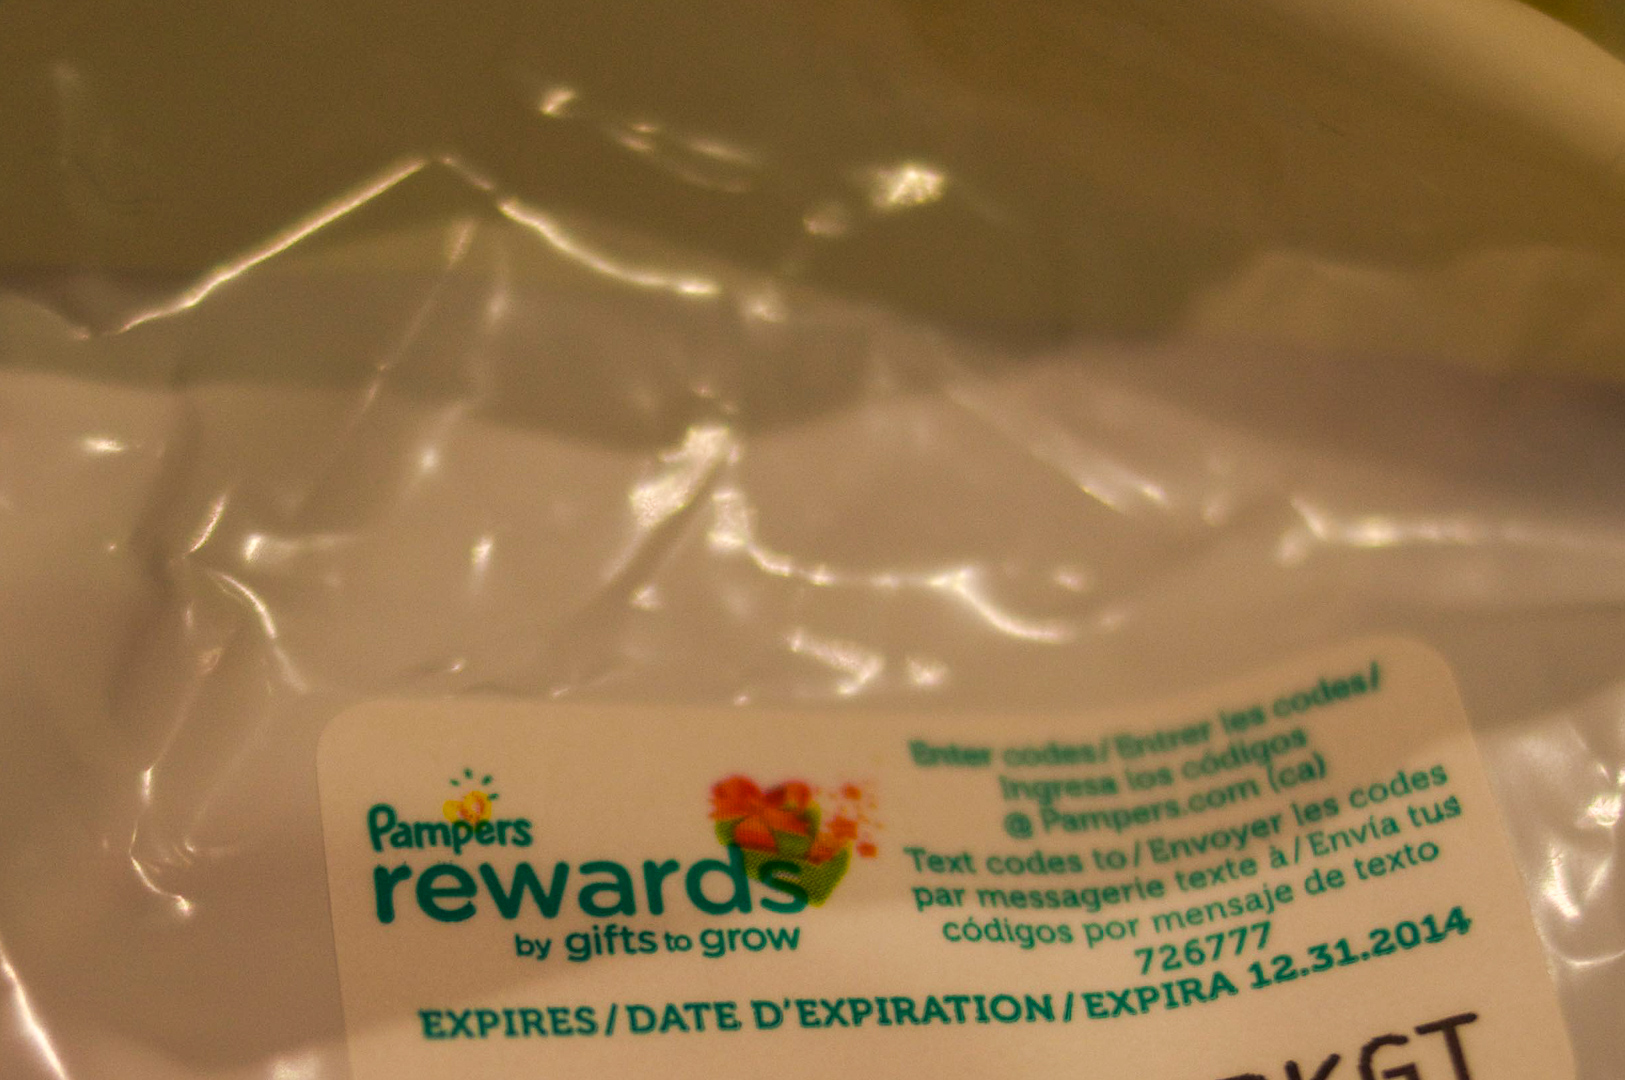 Pampers Rewards sticker with a code that you can enter into pampers.com